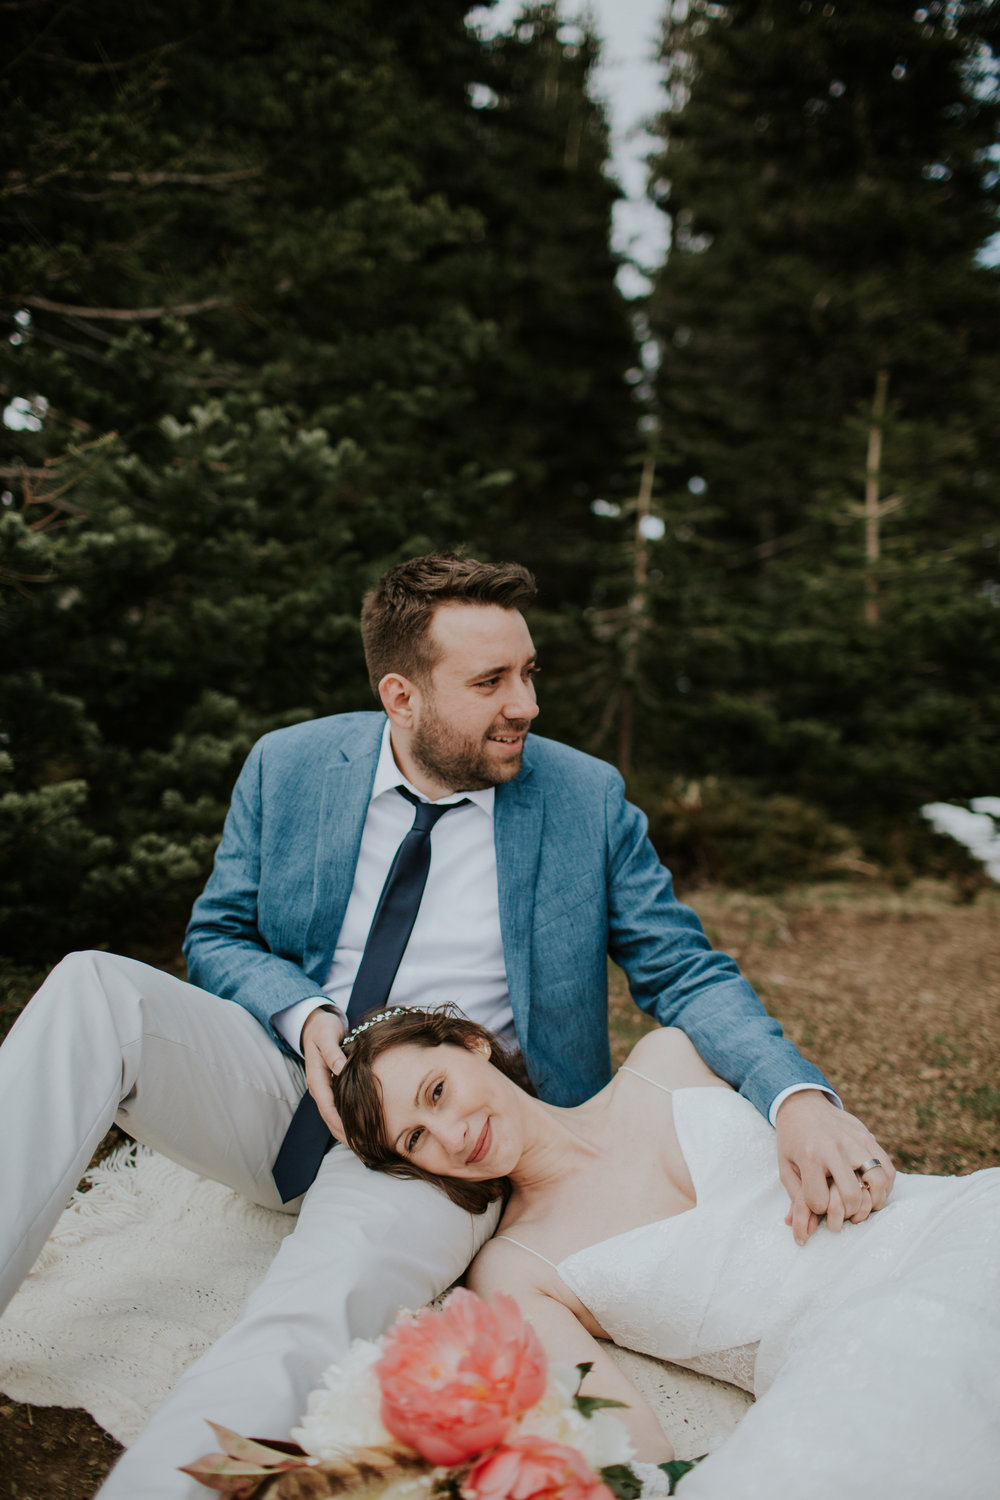 PNW-elopement-wedding-engagement-olympic national park-port angeles-hurricane ridge-lake crescent-kayla dawn photography- photographer-photography-kayladawnphoto-203.jpg